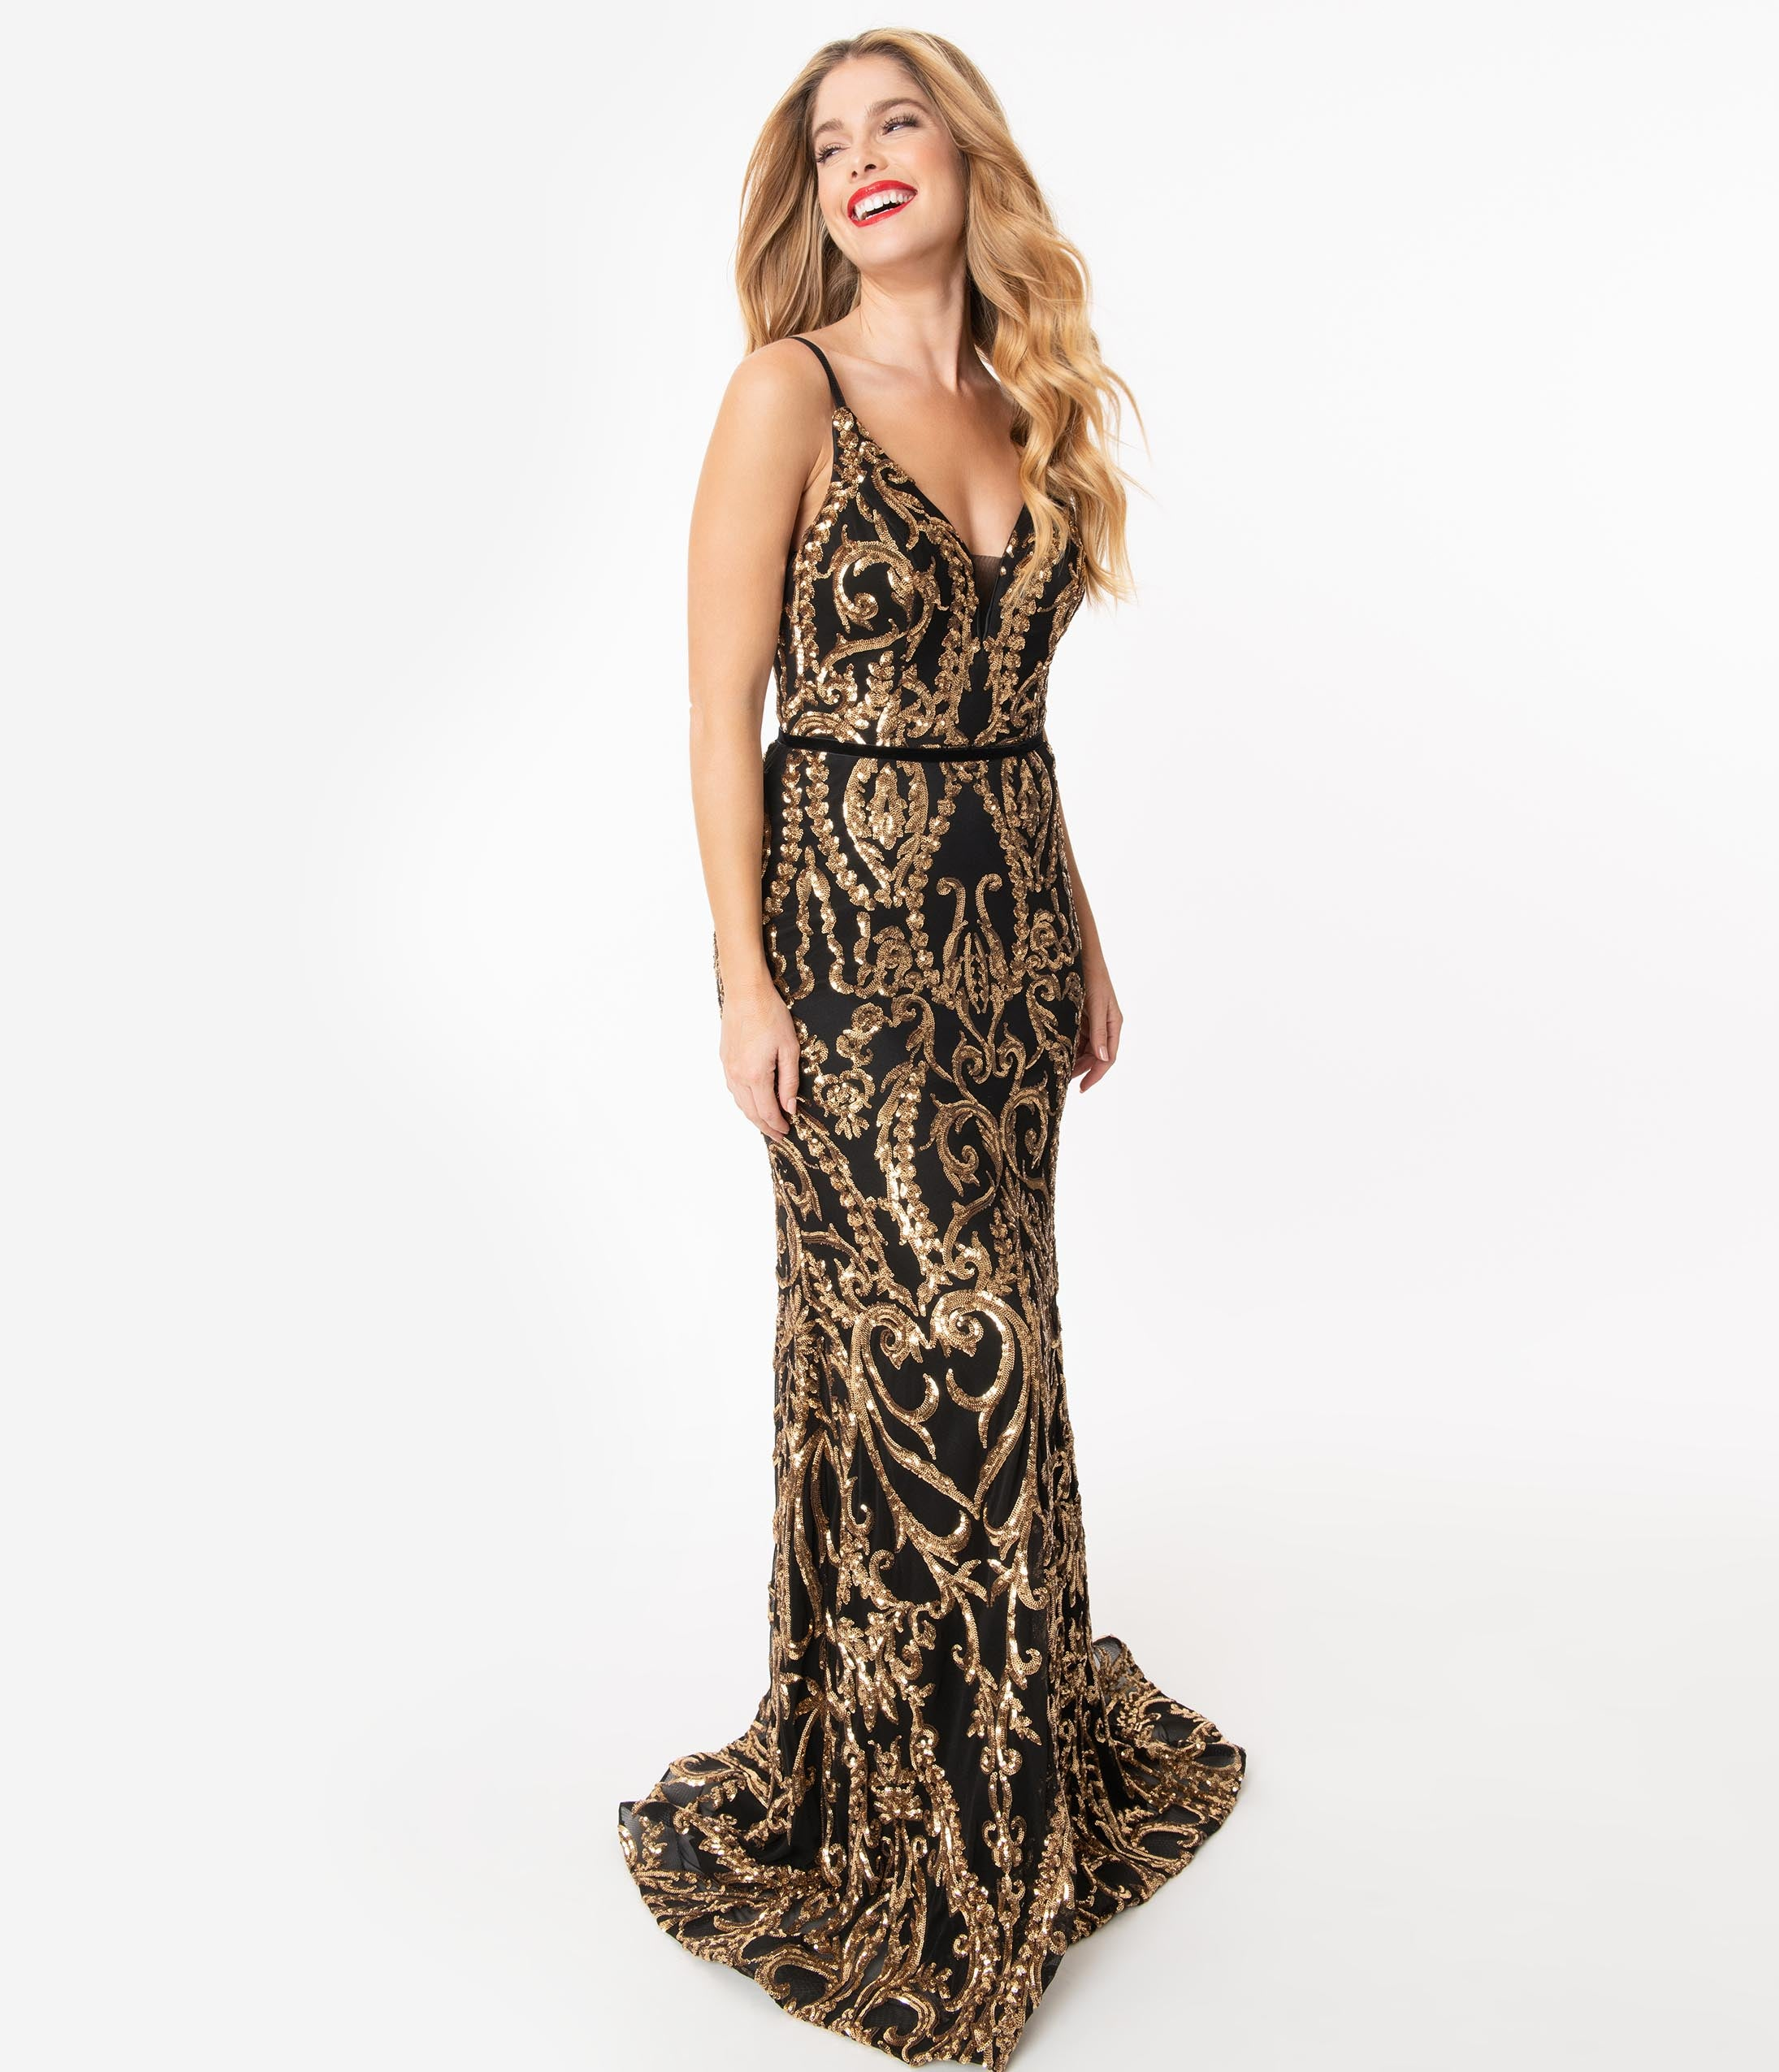 70s Prom, Formal, Evening, Party Dresses Black  Gold Sequin Sleeveless Sexy Gown $198.00 AT vintagedancer.com